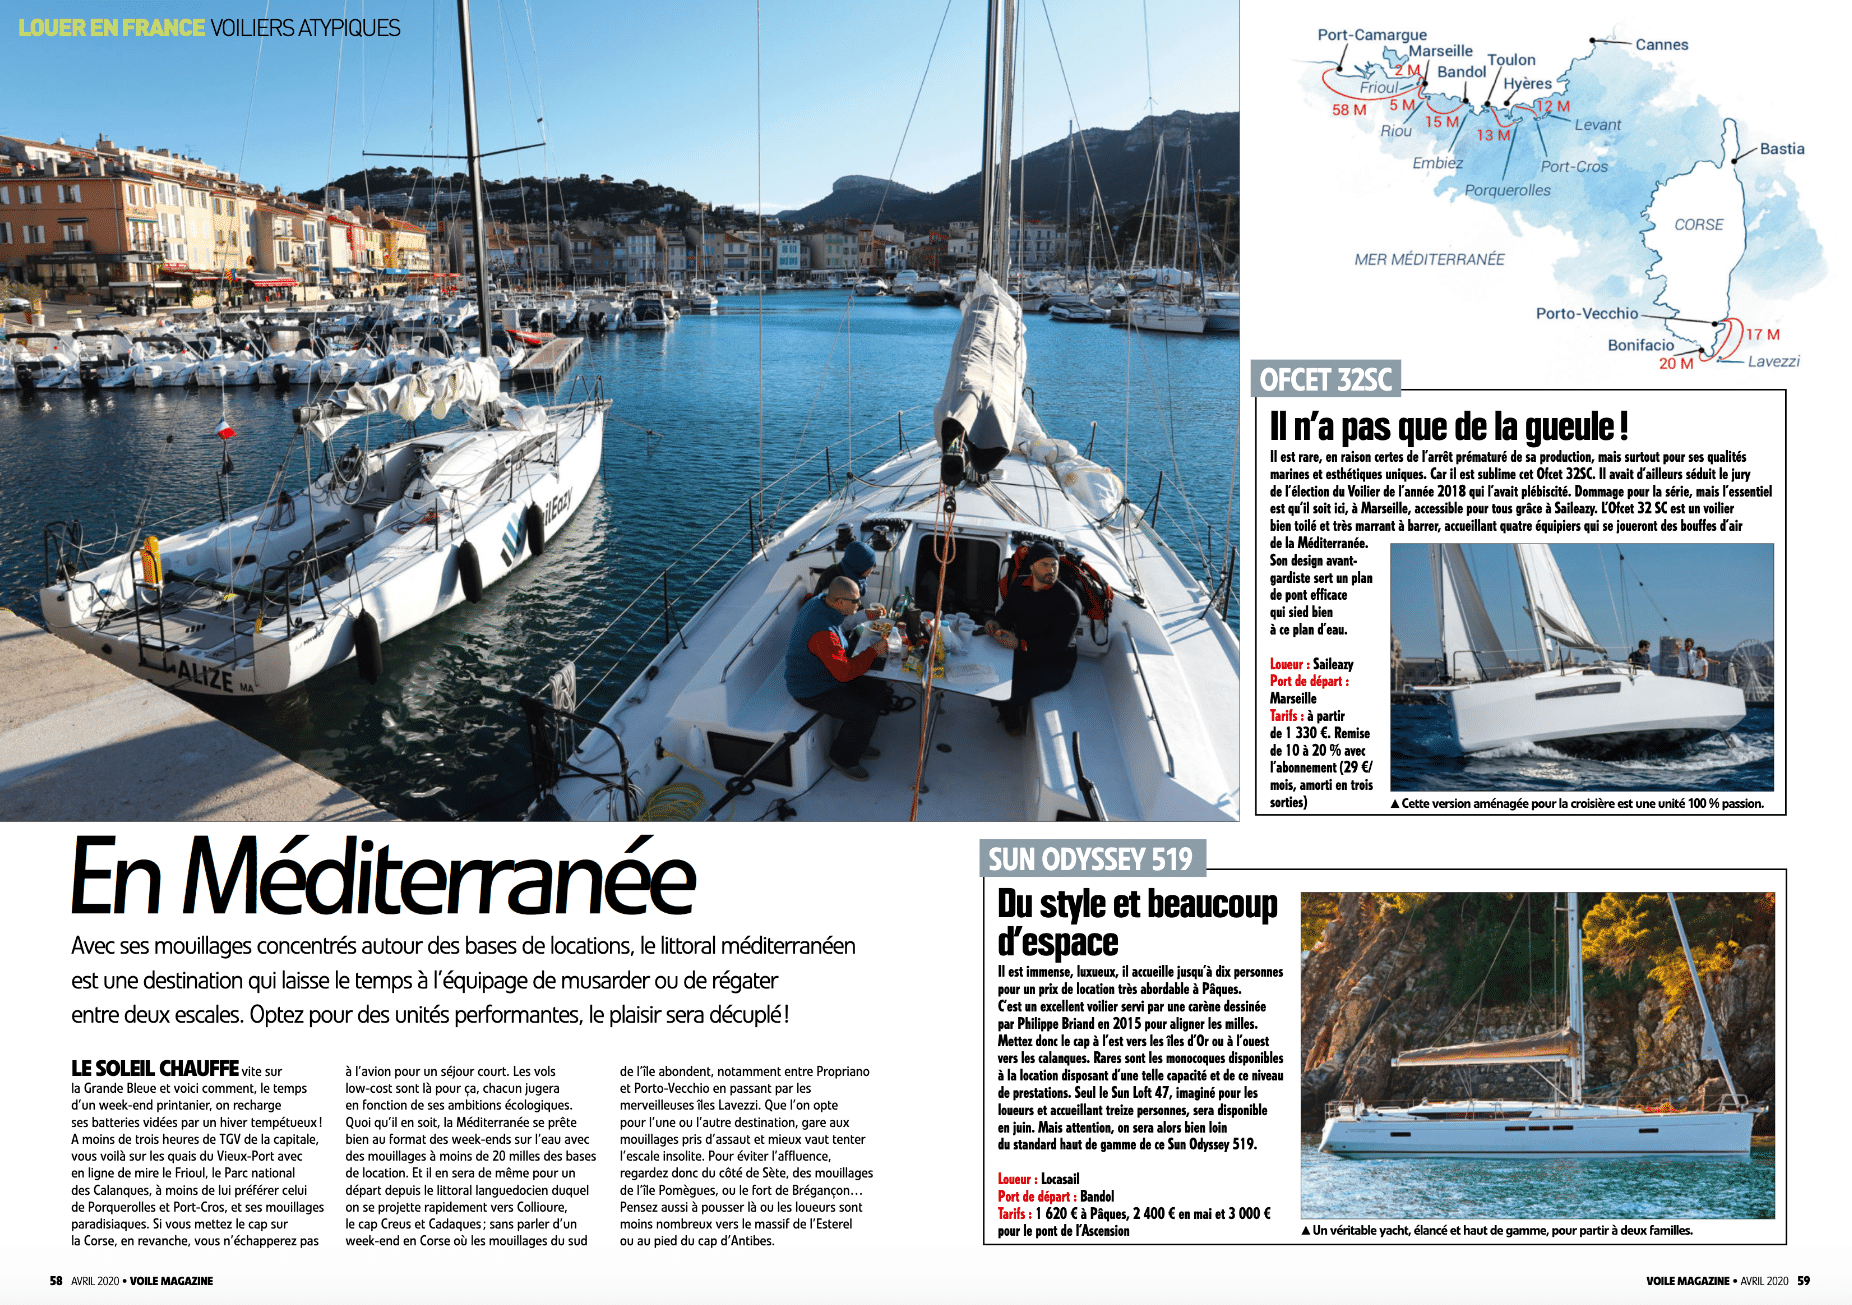 06 - Louer en France le temps d'un week-end (Voile Magazine Avril 2020)